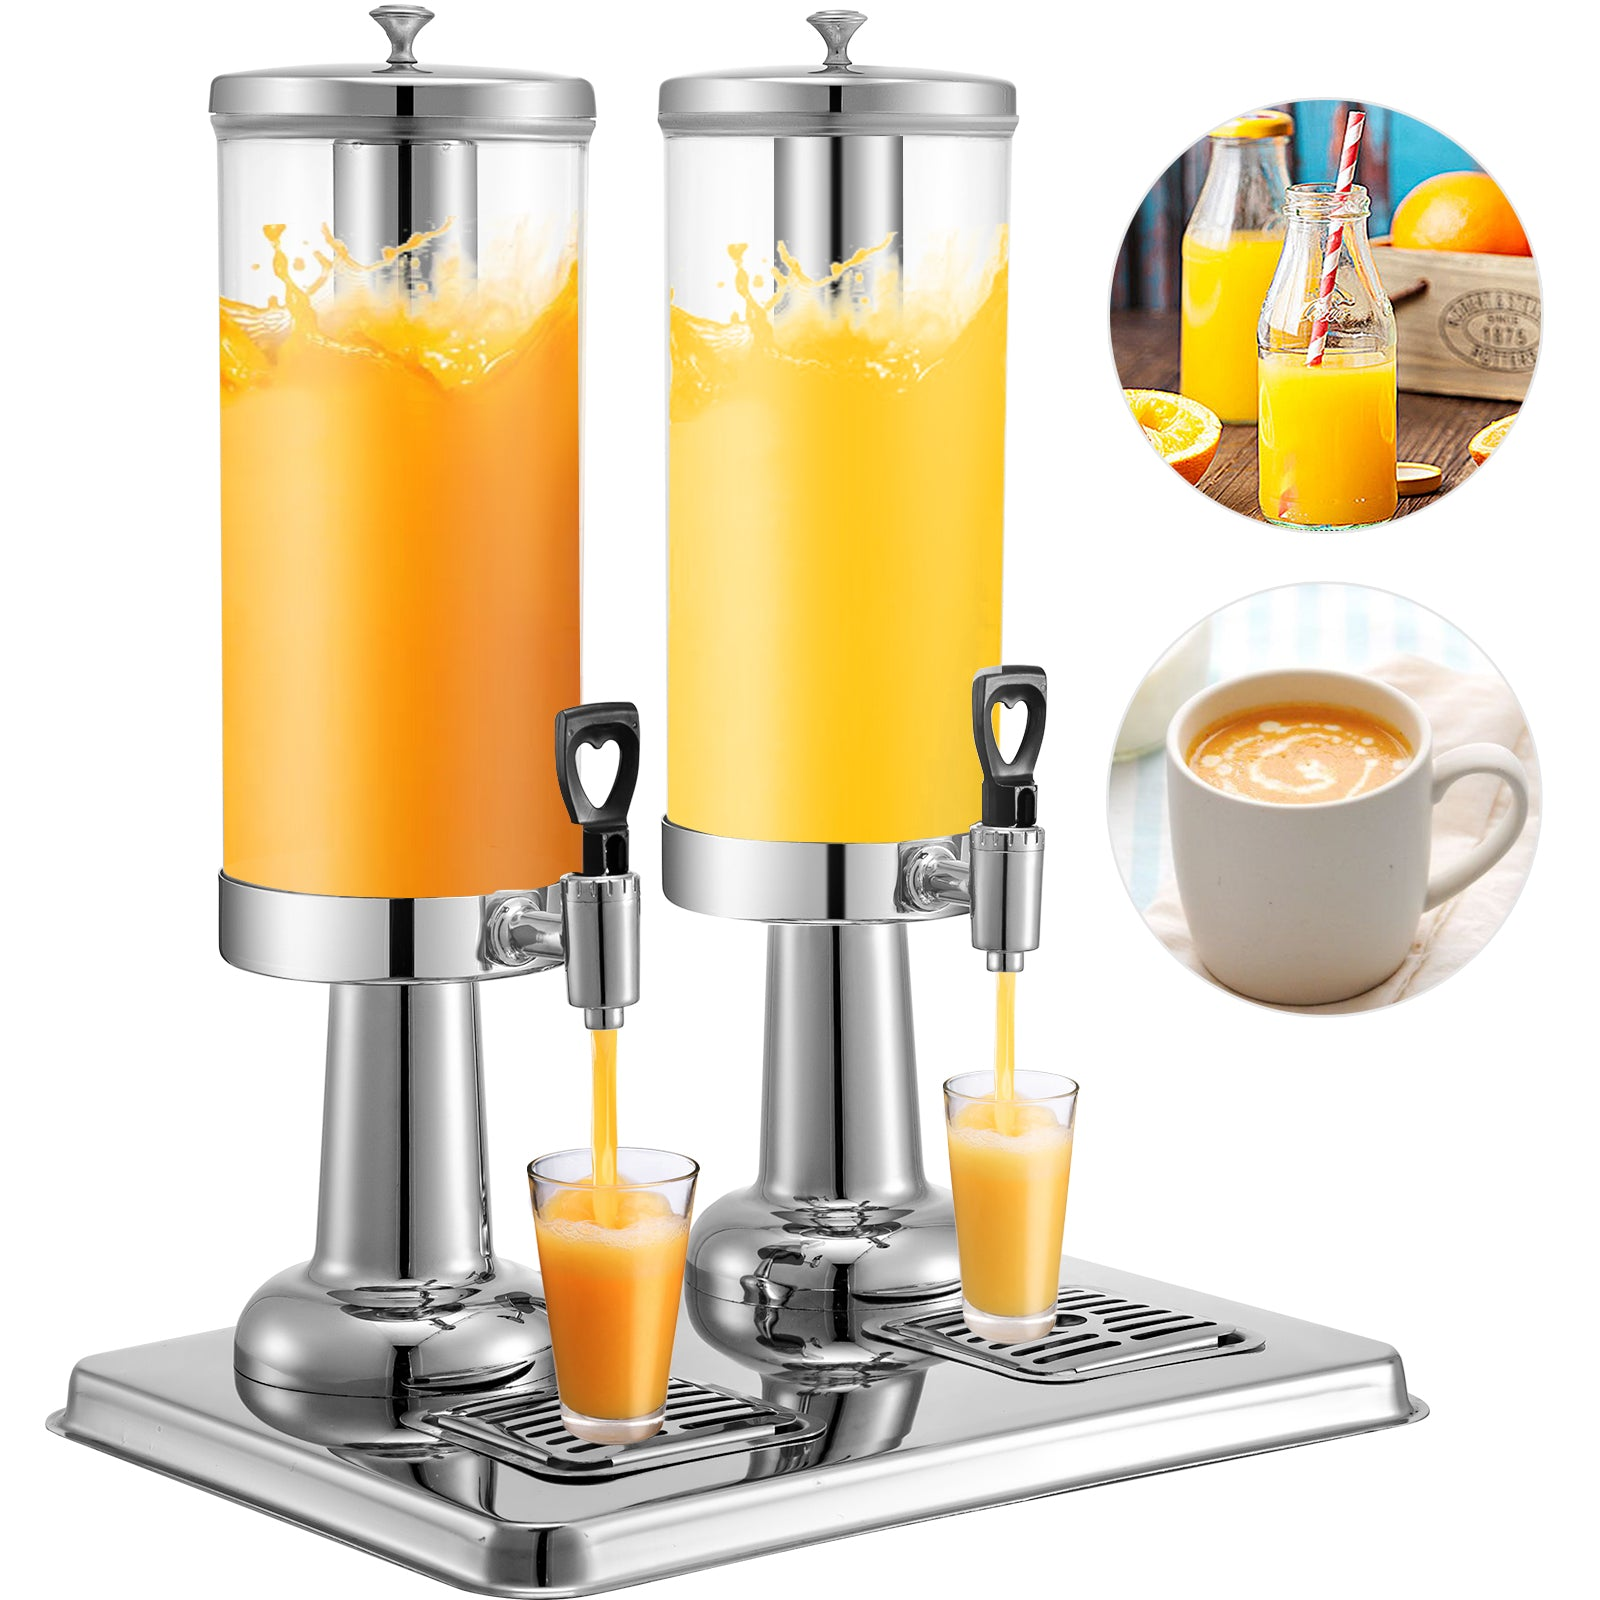 11l Hotel Juice Dispenser Beverage Dispenser Double Tanks 3 Gal *2 Buffet Drink